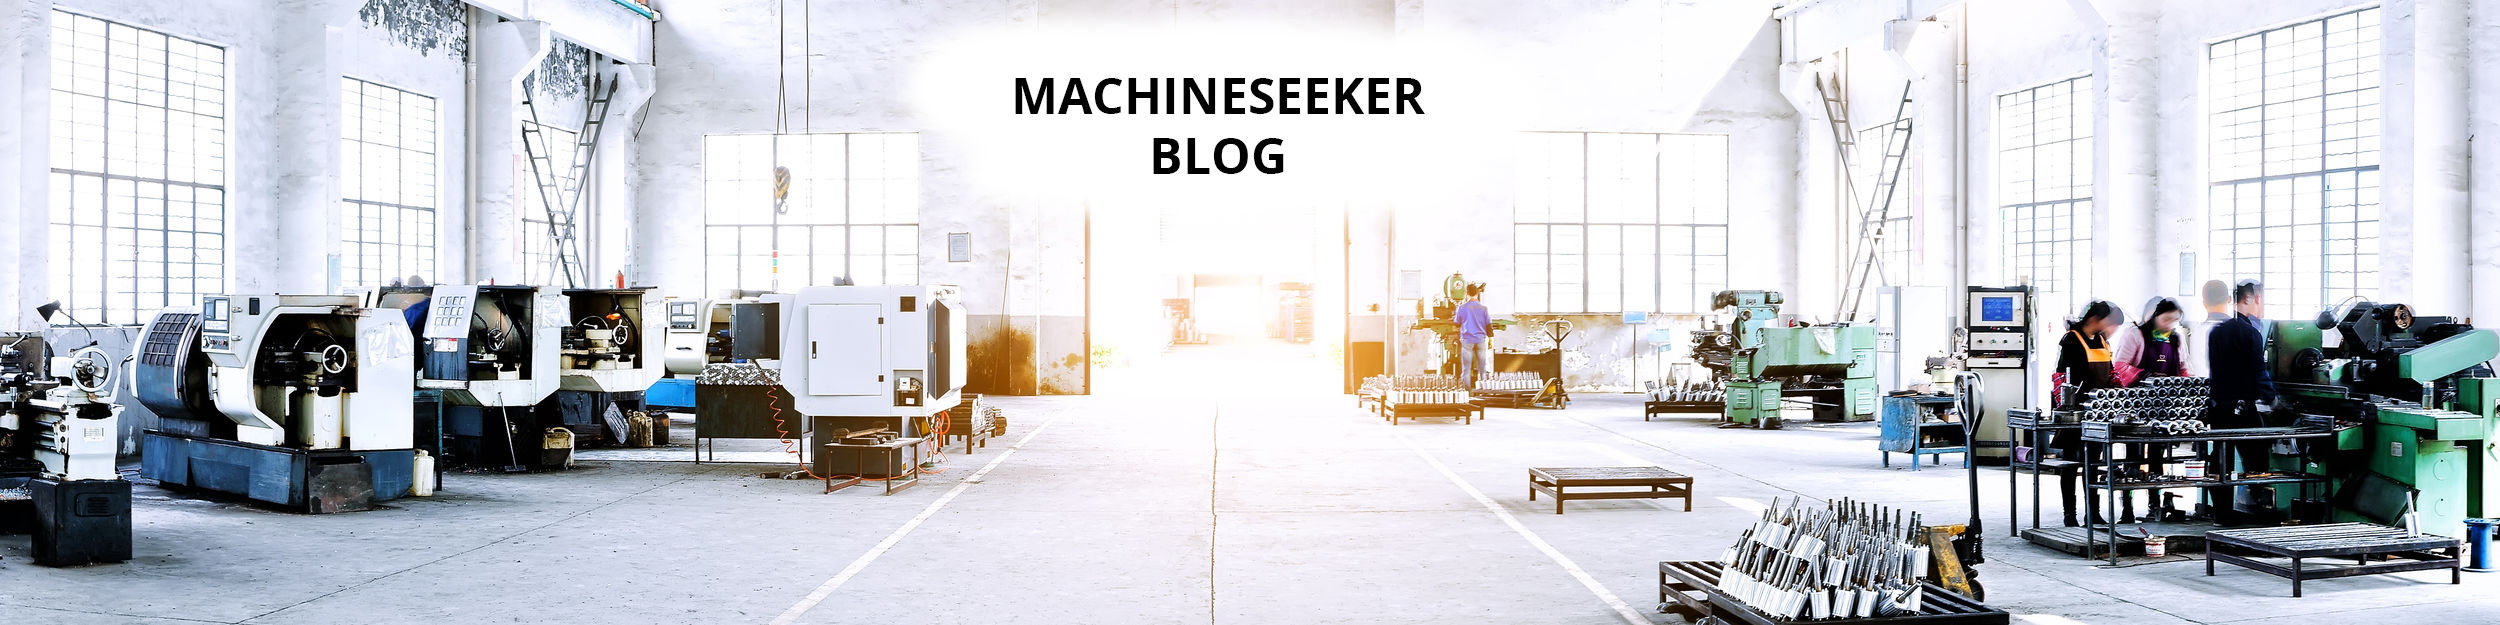 ab2d45b247 Machineseeker Blog -